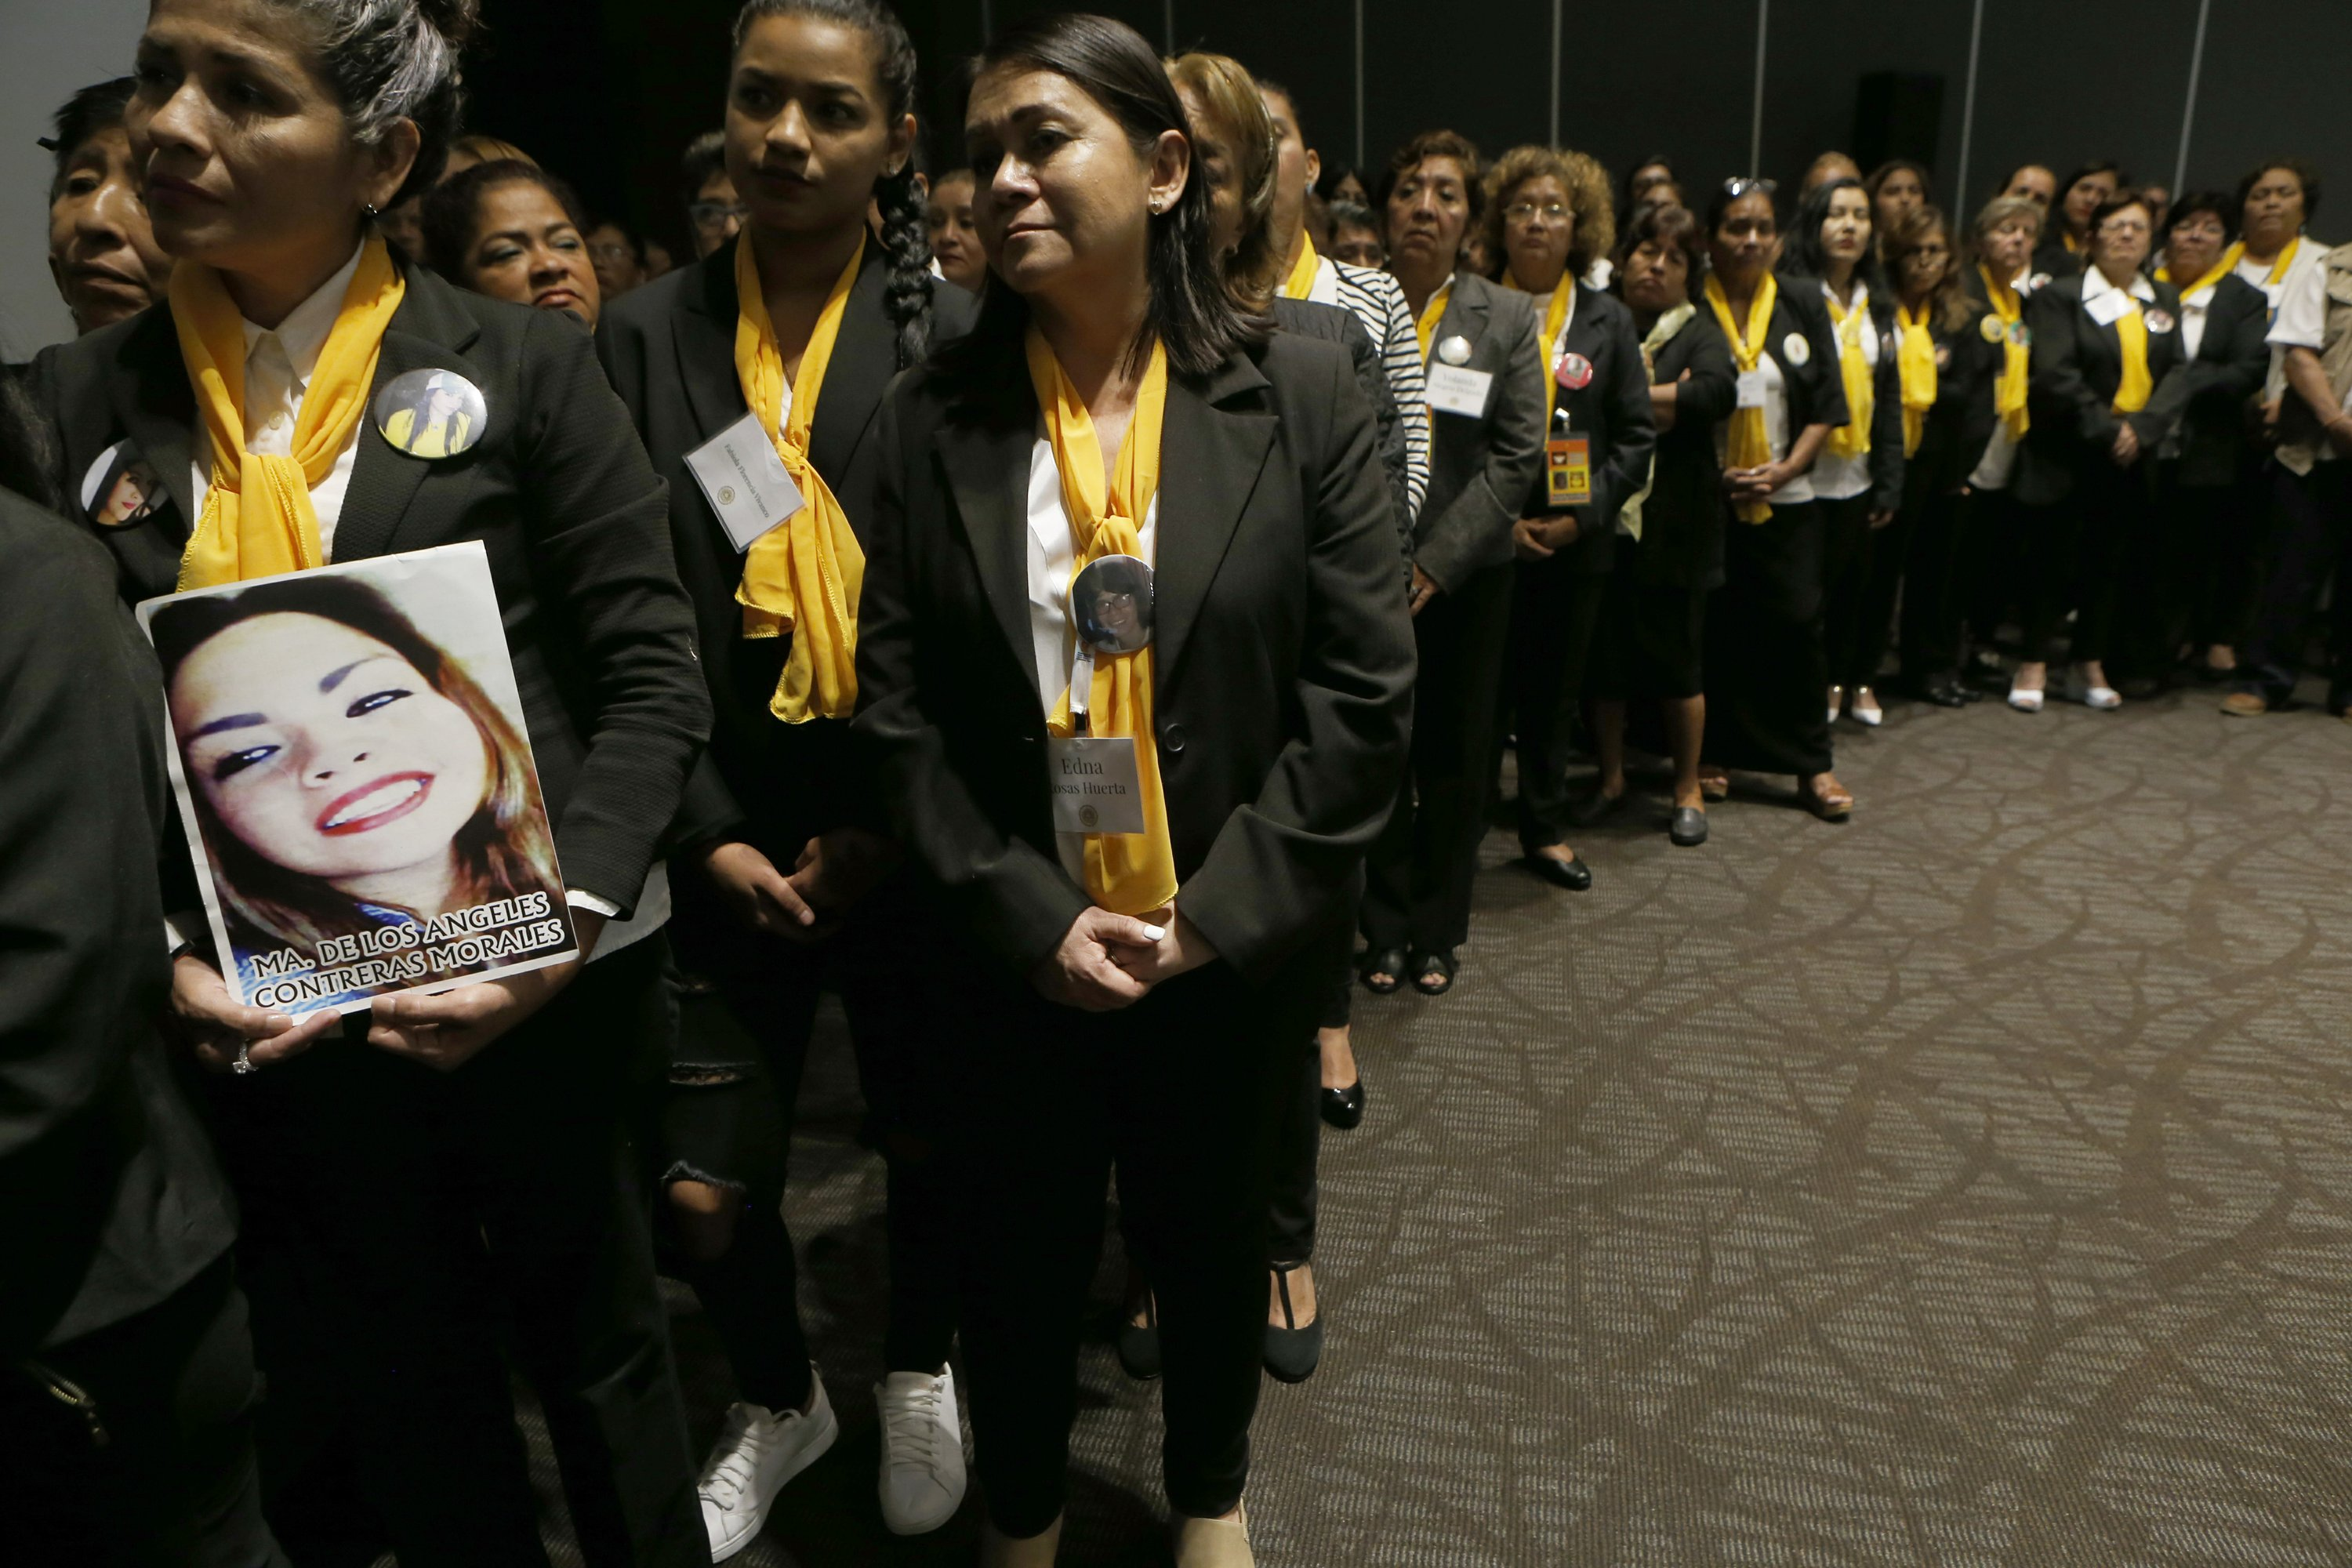 Mothers searching for the disappeared get Notre Dame Award